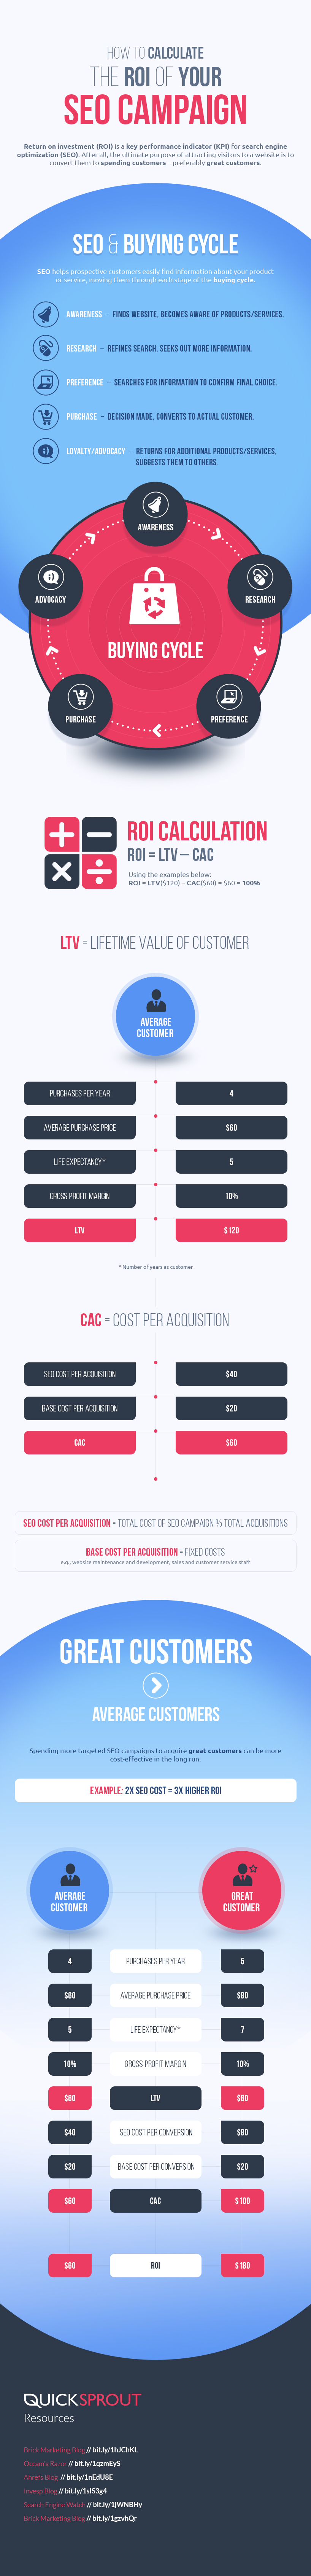 How to Calculate the ROI of Your SEO Campaign